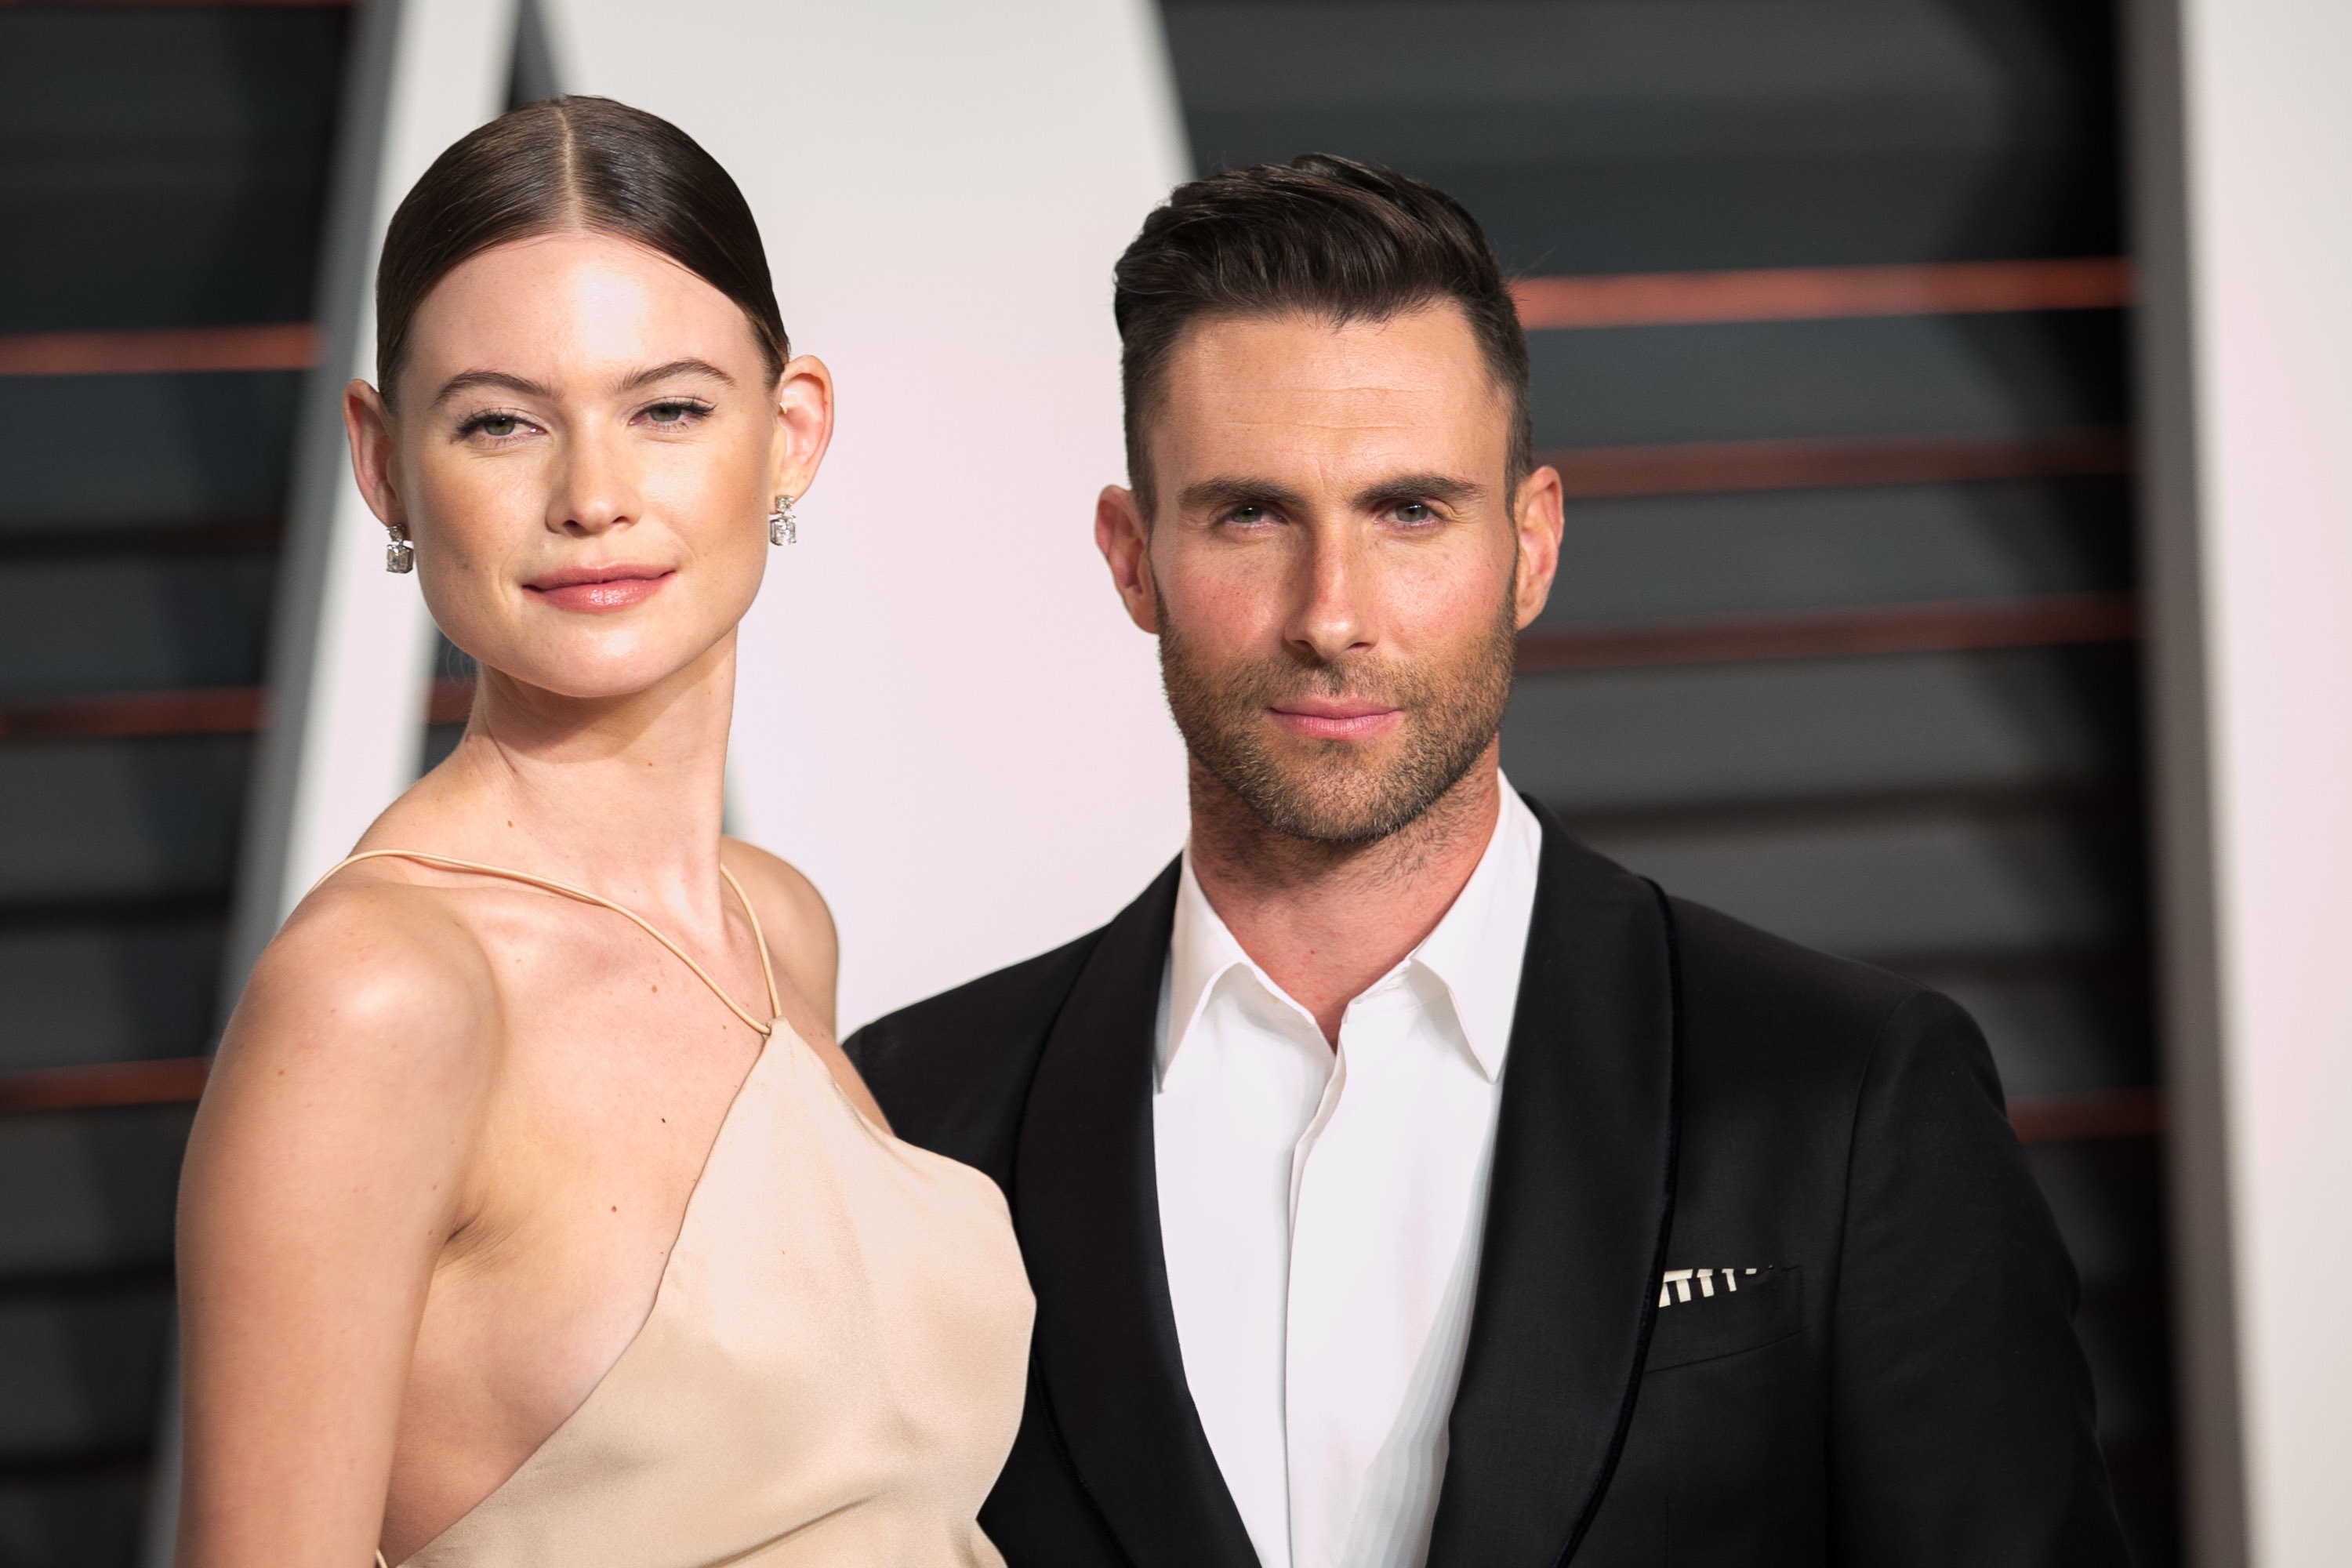 Behati Prinsloo and Adam Levine attends the 2015 Vanity Fair Oscar Party in Los Angeles on Feb. 22, 2015.